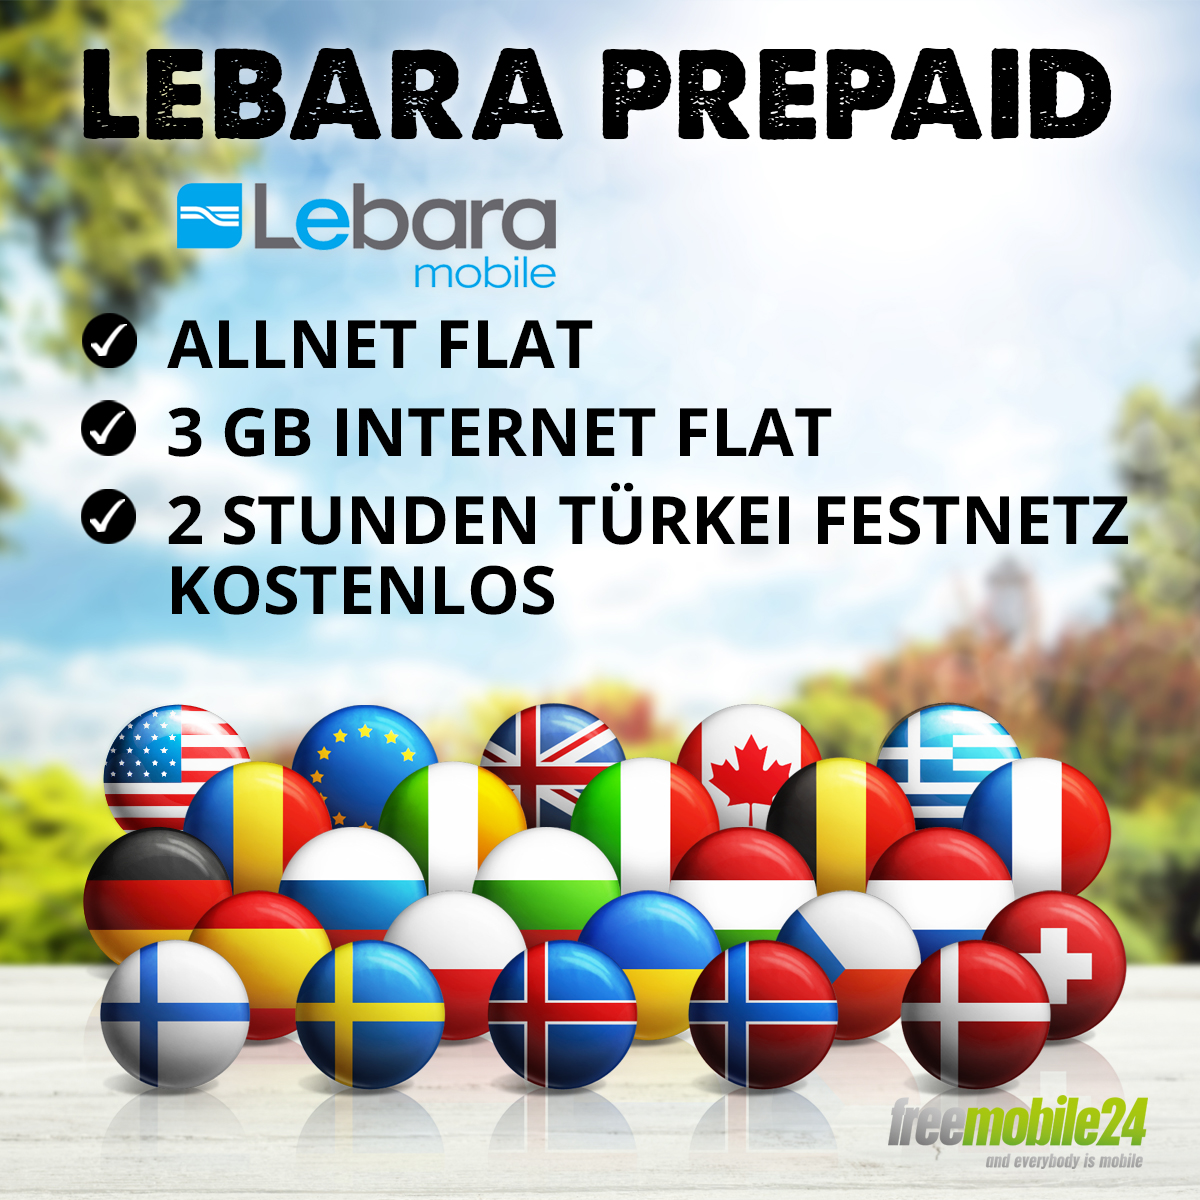 lebara prepaid sim karte allnet flat internet flat 3gb t mobile t rkei festnetz ebay. Black Bedroom Furniture Sets. Home Design Ideas